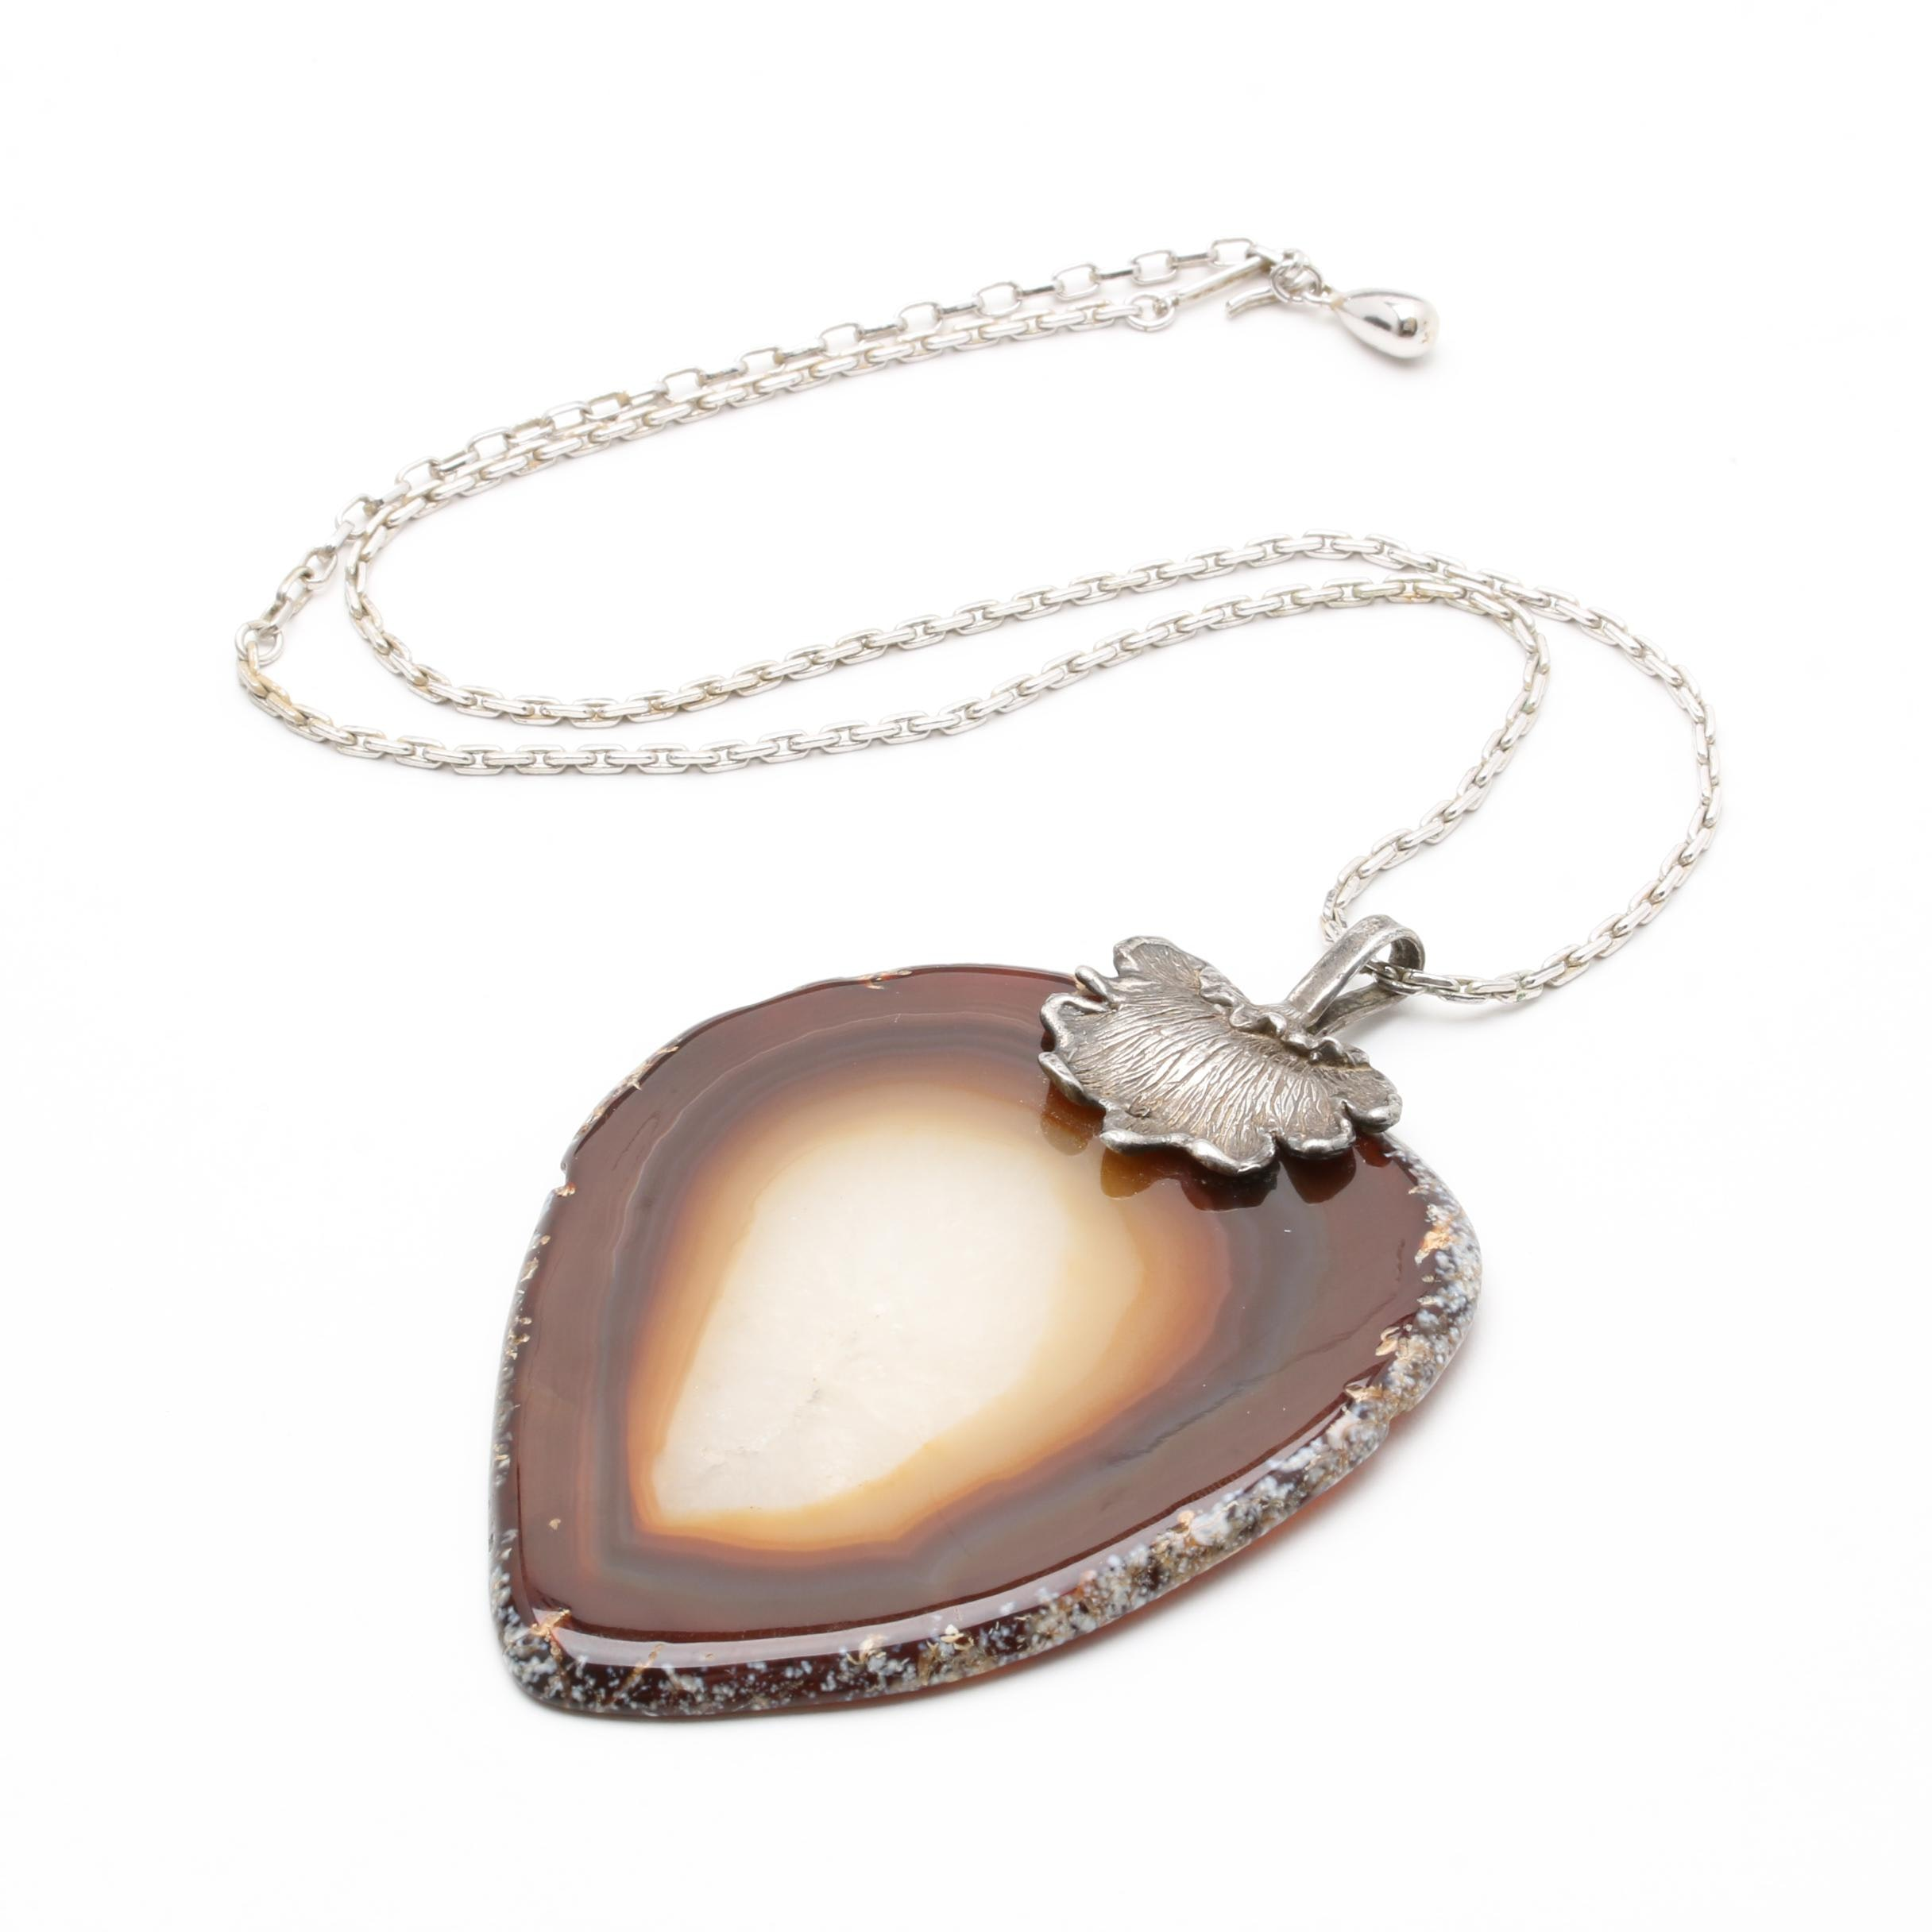 Silver Tone Agate Pendant Necklace Including Sterling Silver